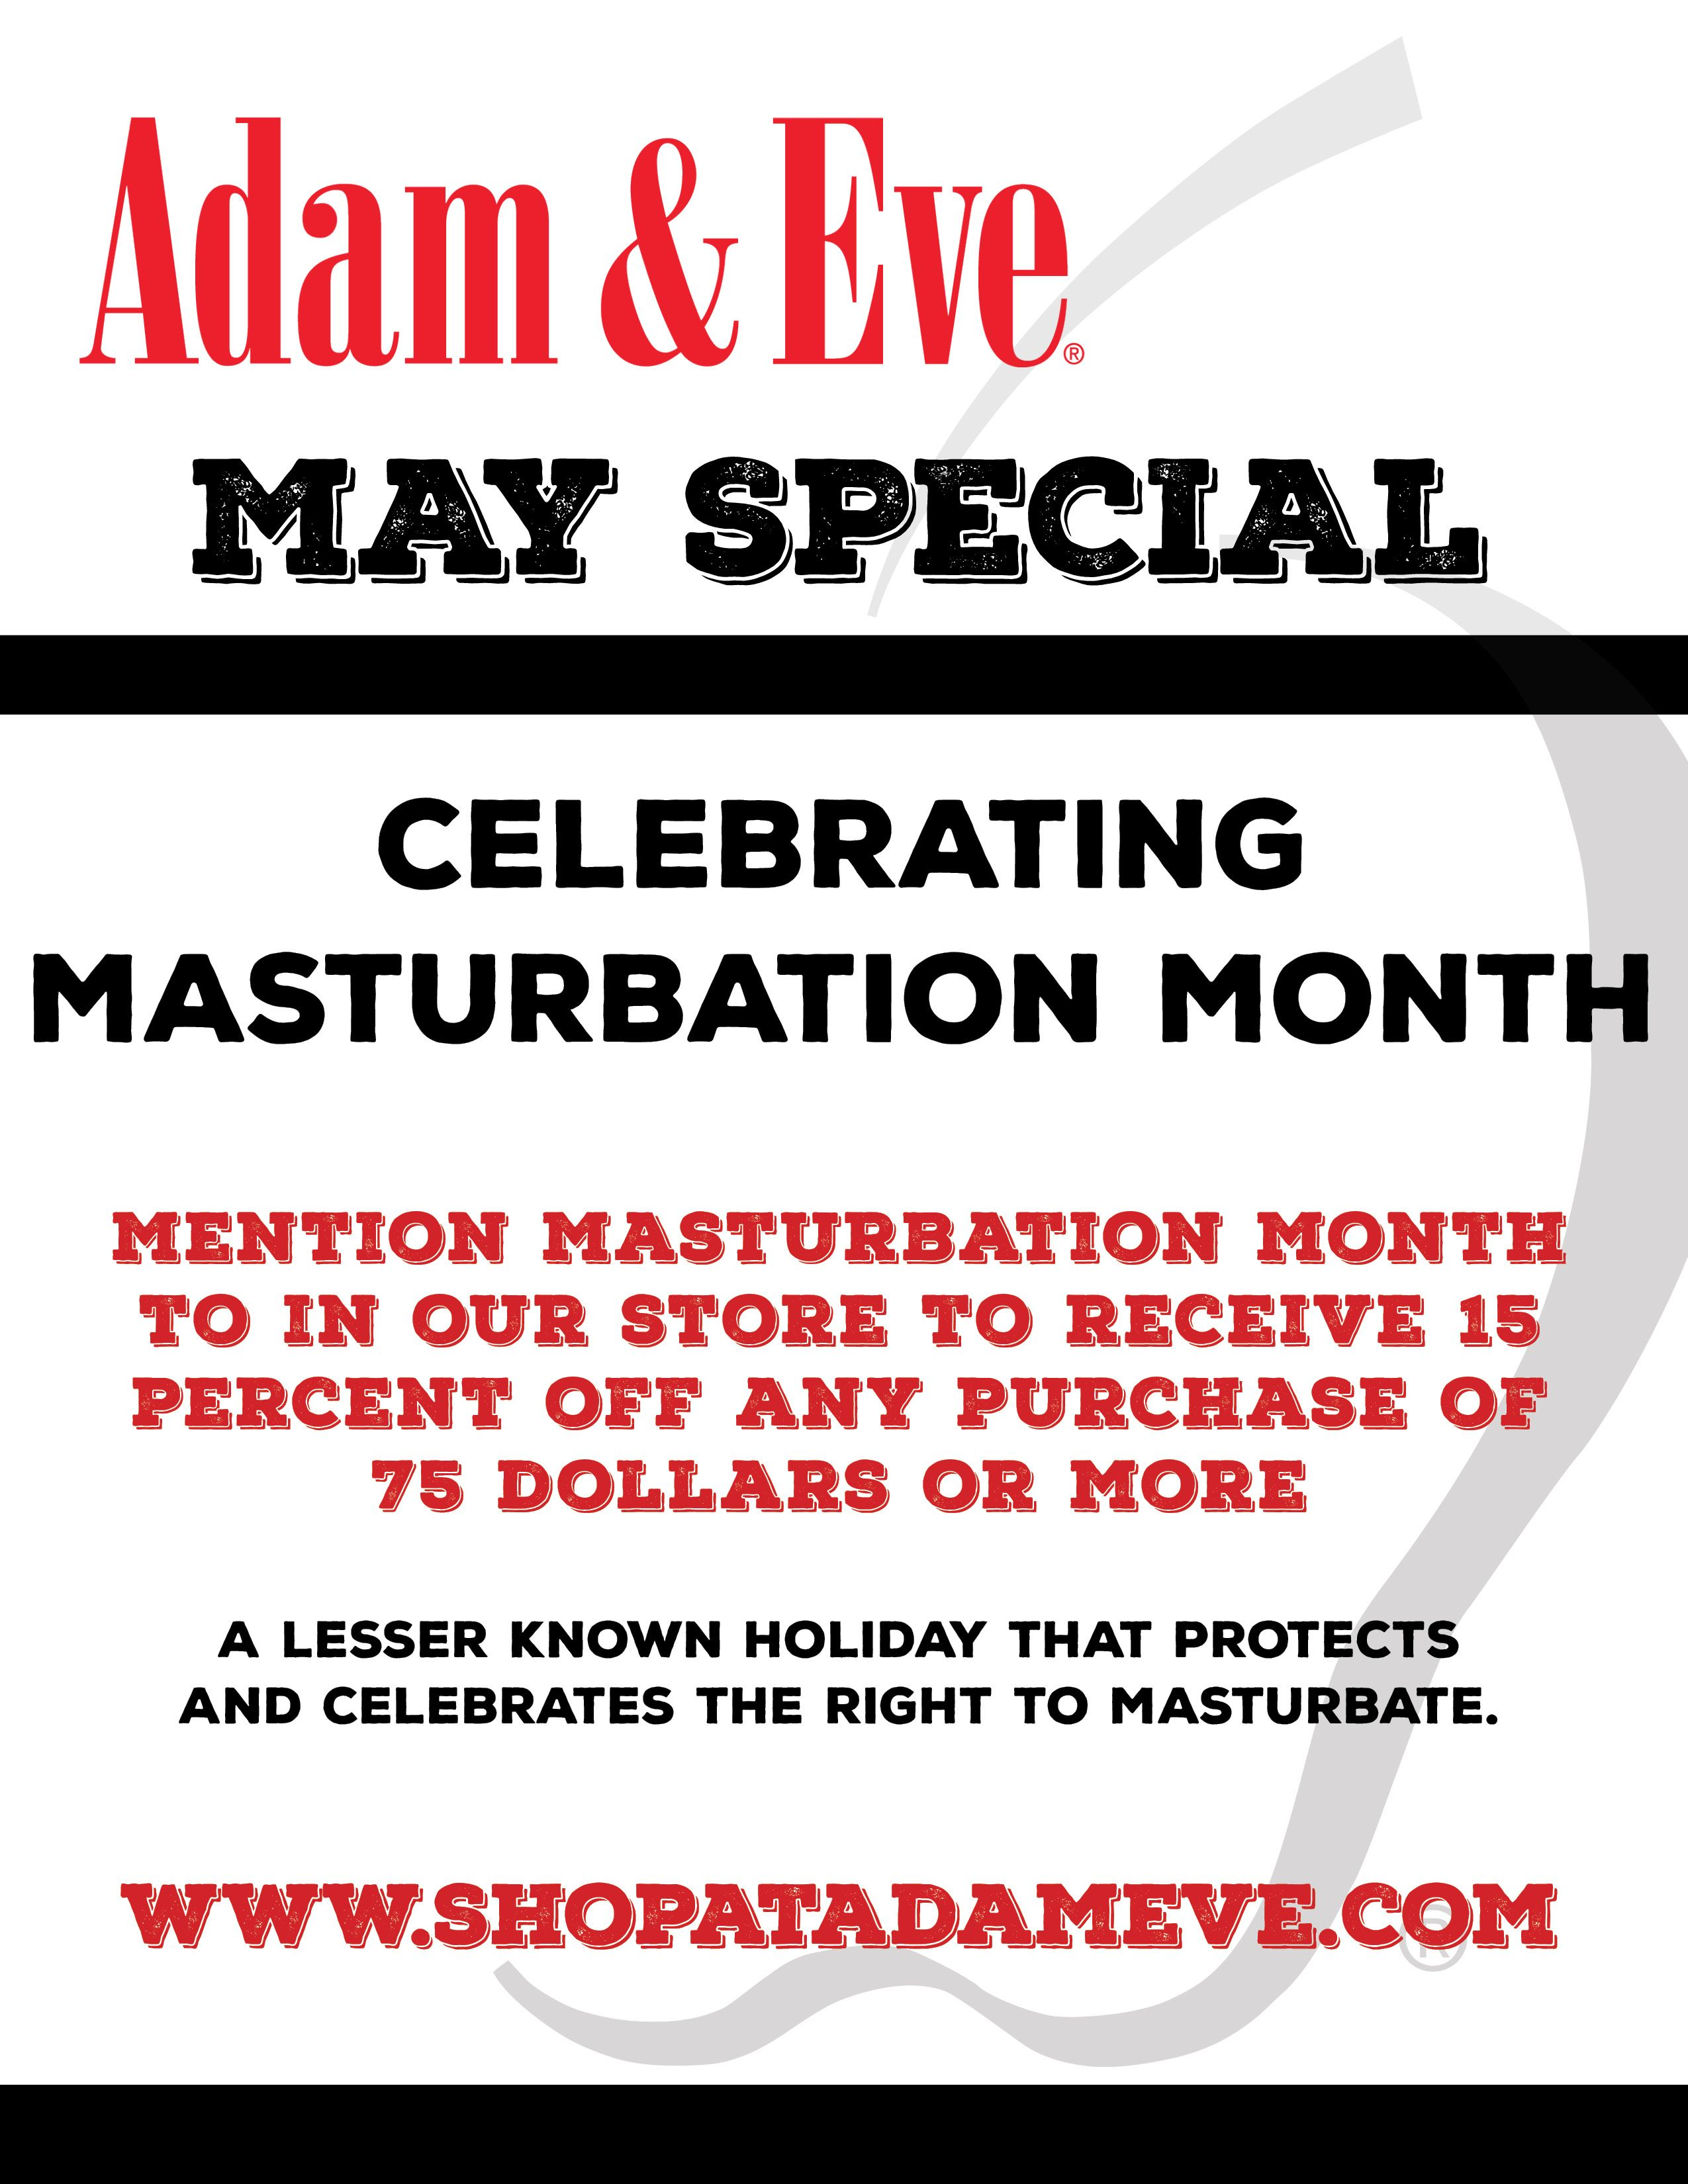 May Special Mention Month To In Our Store To Receive 15 Percent Off Any Purchase Of 75 Dollars Or More